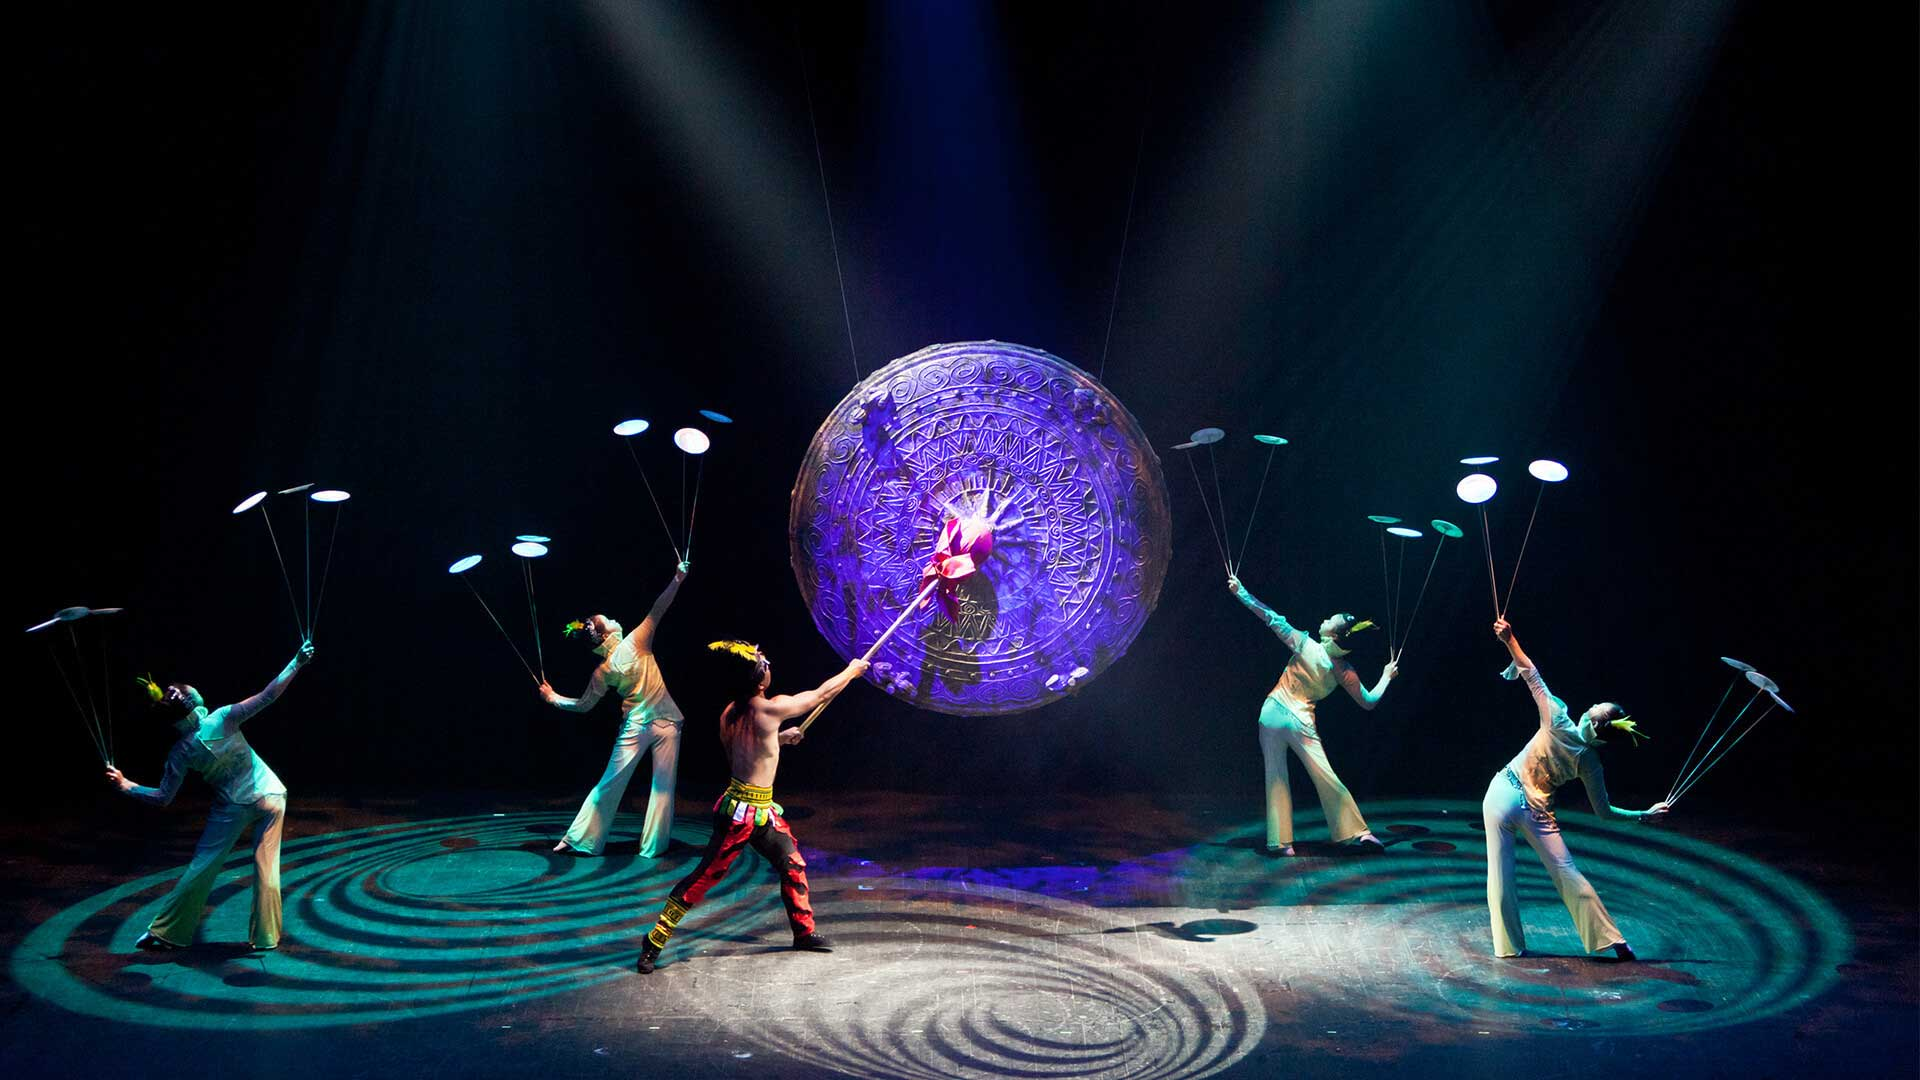 The Golden Dragon Acrobats perform feats of athleticism and artistry on a stage centered by a giant gong.